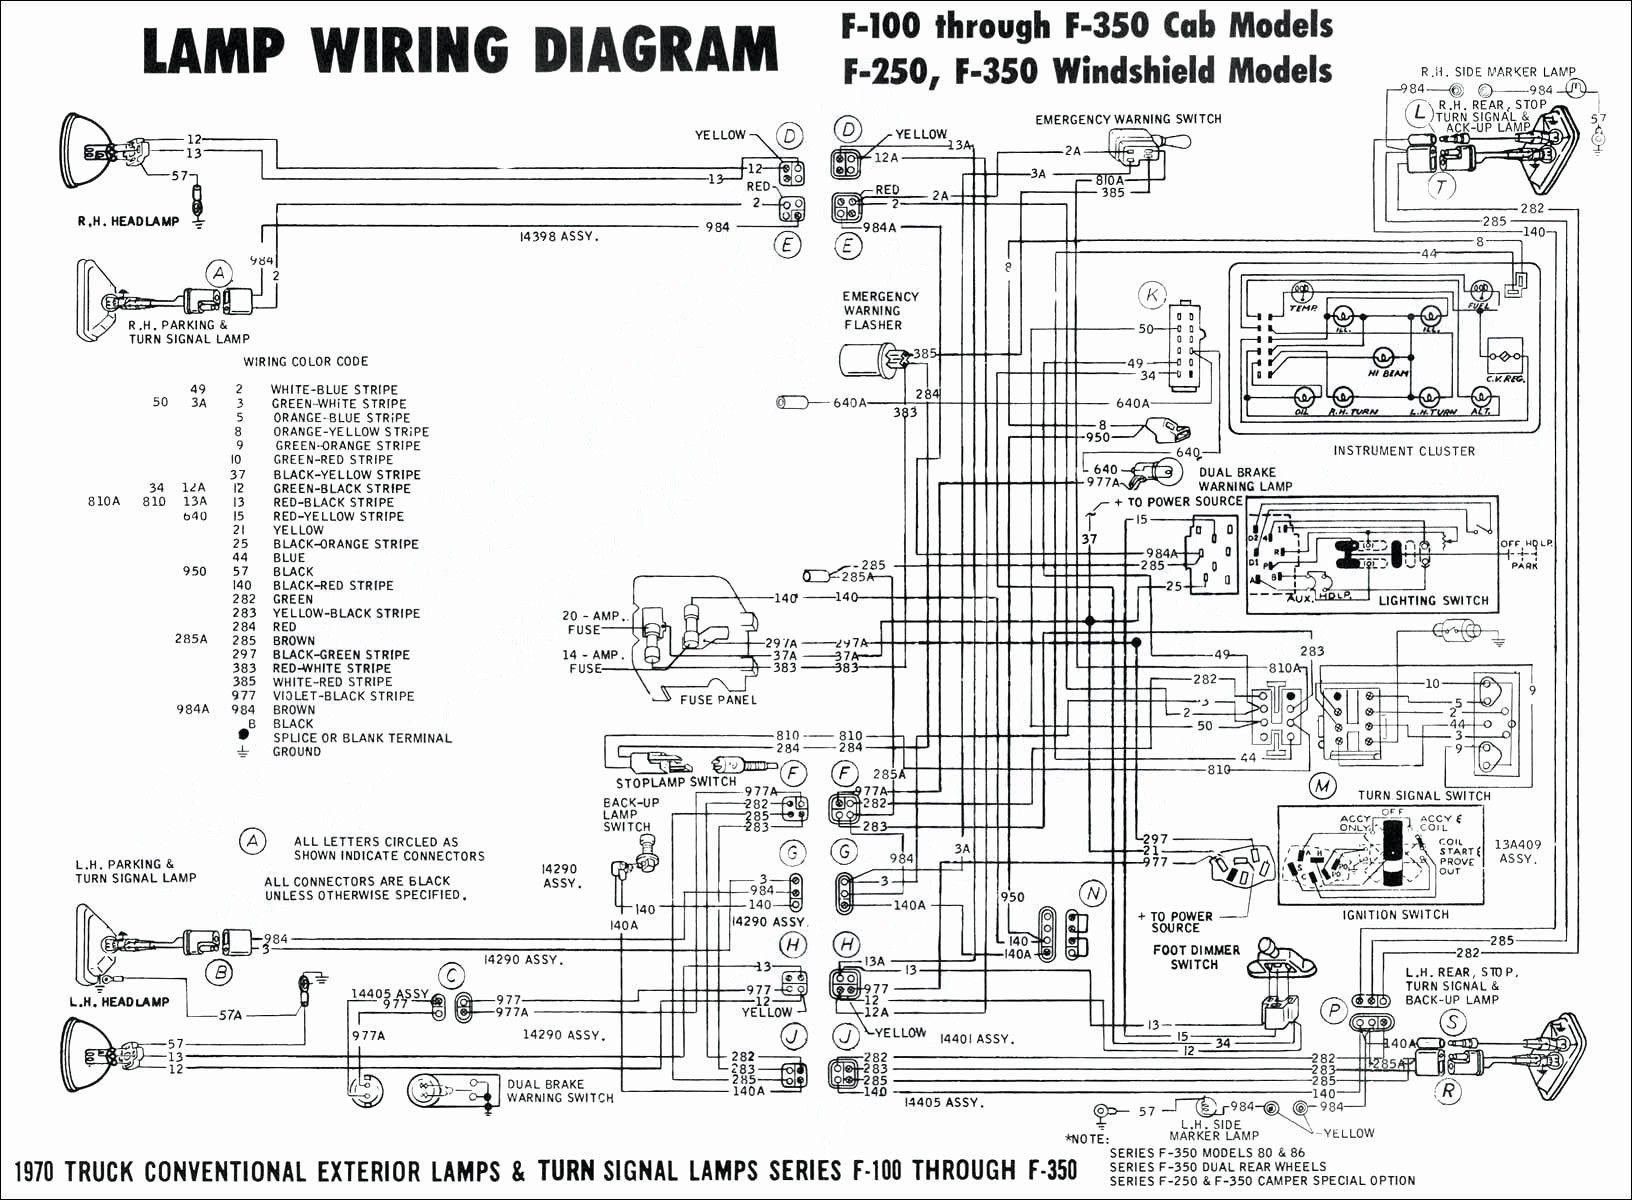 Unique Hot Water Heater Thermostat Wiring Diagram In 2020 Electrical Wiring Diagram Diagram Circuit Diagram